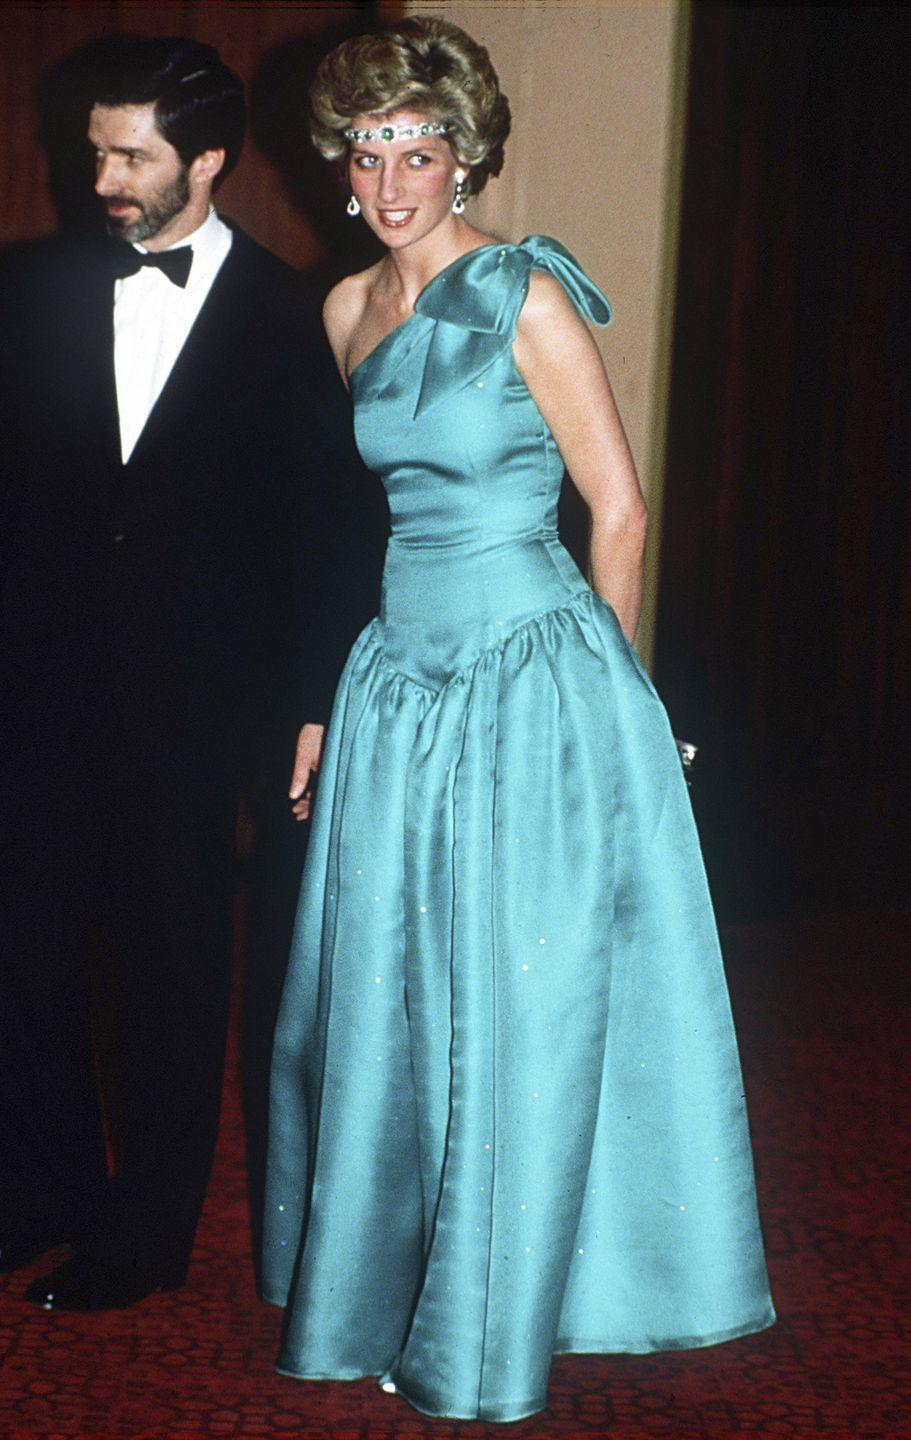 "<p>The emerald and diamond piece in question belonged to Queen Elizabeth, but Princess Diana <a href=""https://people.com/royals/princess-diana-jewelry-collection-tiaras/?slide=5611081#5611081"" rel=""nofollow noopener"" target=""_blank"" data-ylk=""slk:wore it frequently"" class=""link rapid-noclick-resp"">wore it frequently</a>. During one event in Australia, she fashioned the accessory as a tiara because she loved it so much.</p>"